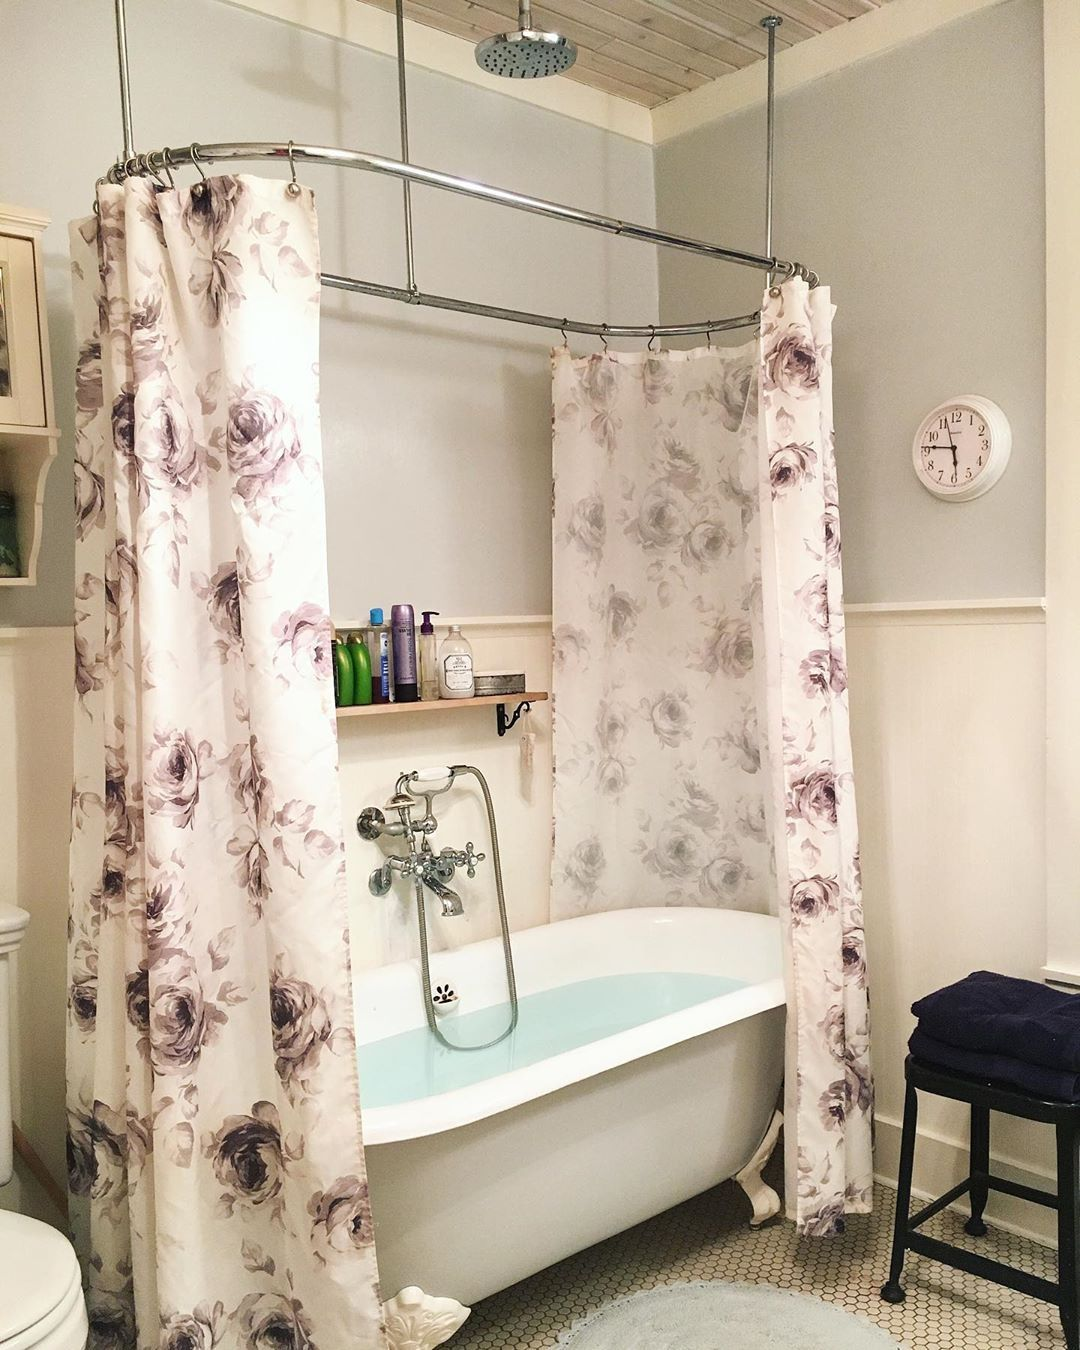 Cambridge Cast Iron Double Ended Clawfoot Tub No Faucet